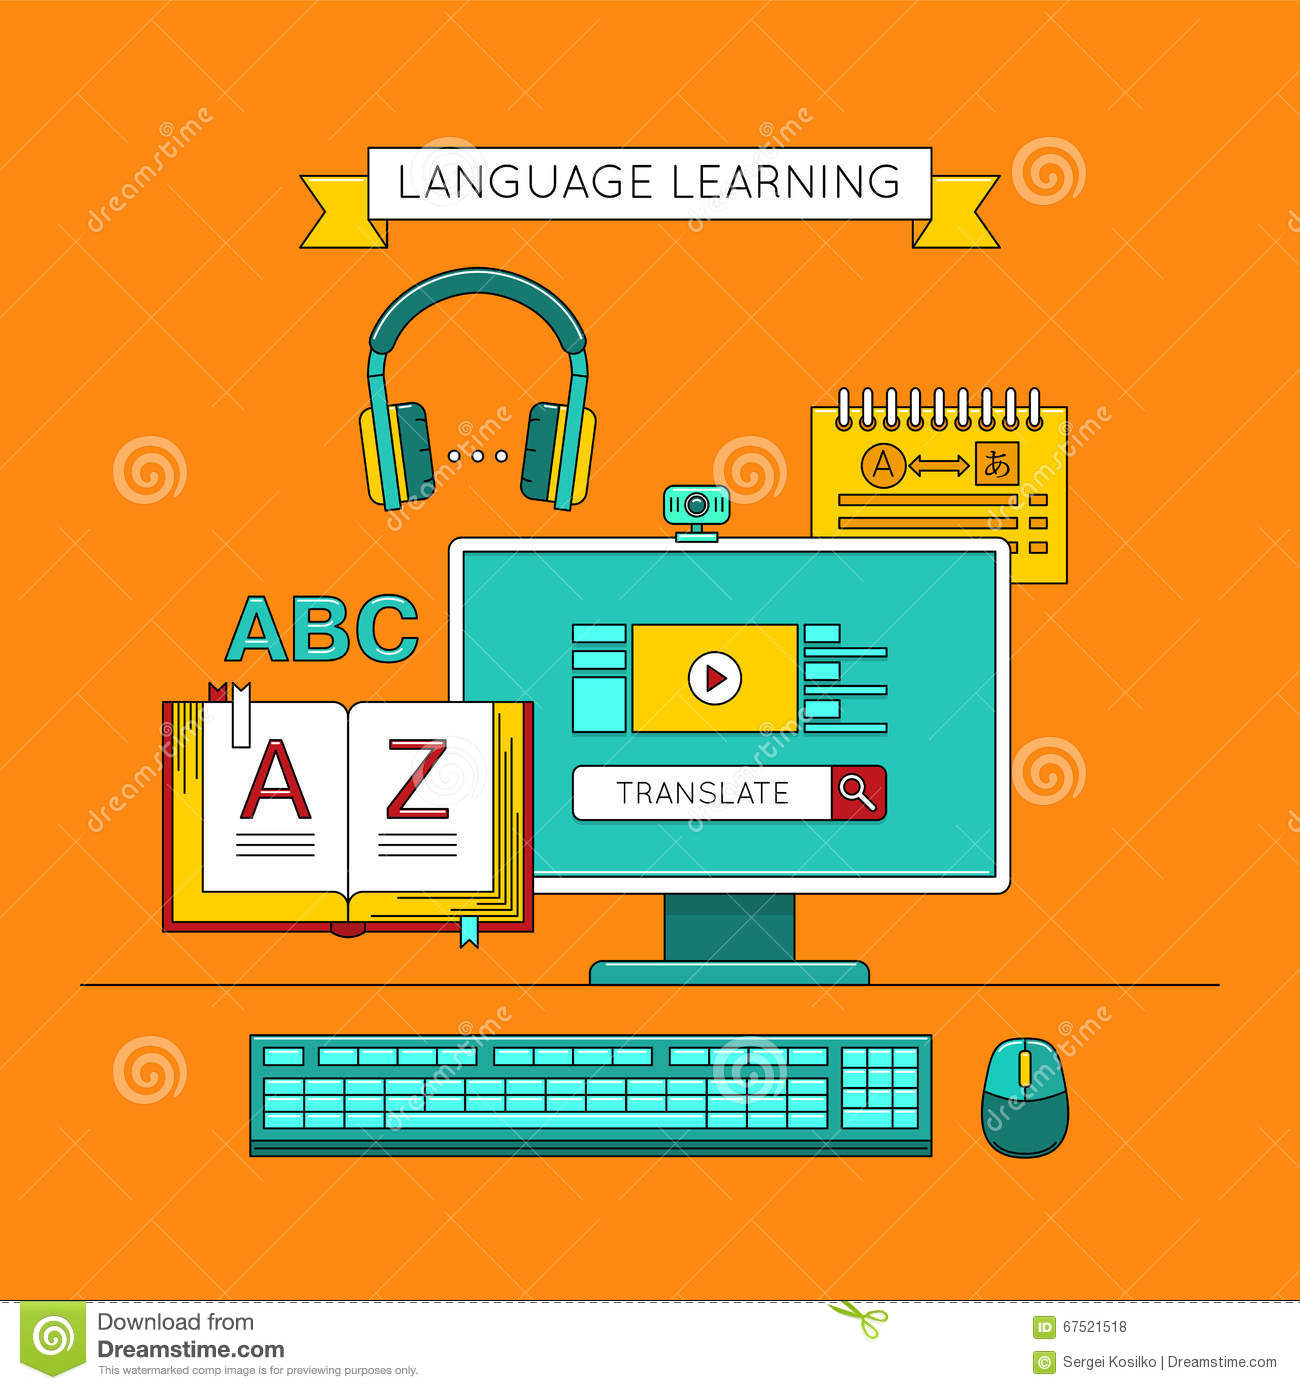 Is there a free online service that teaches a foreign language?